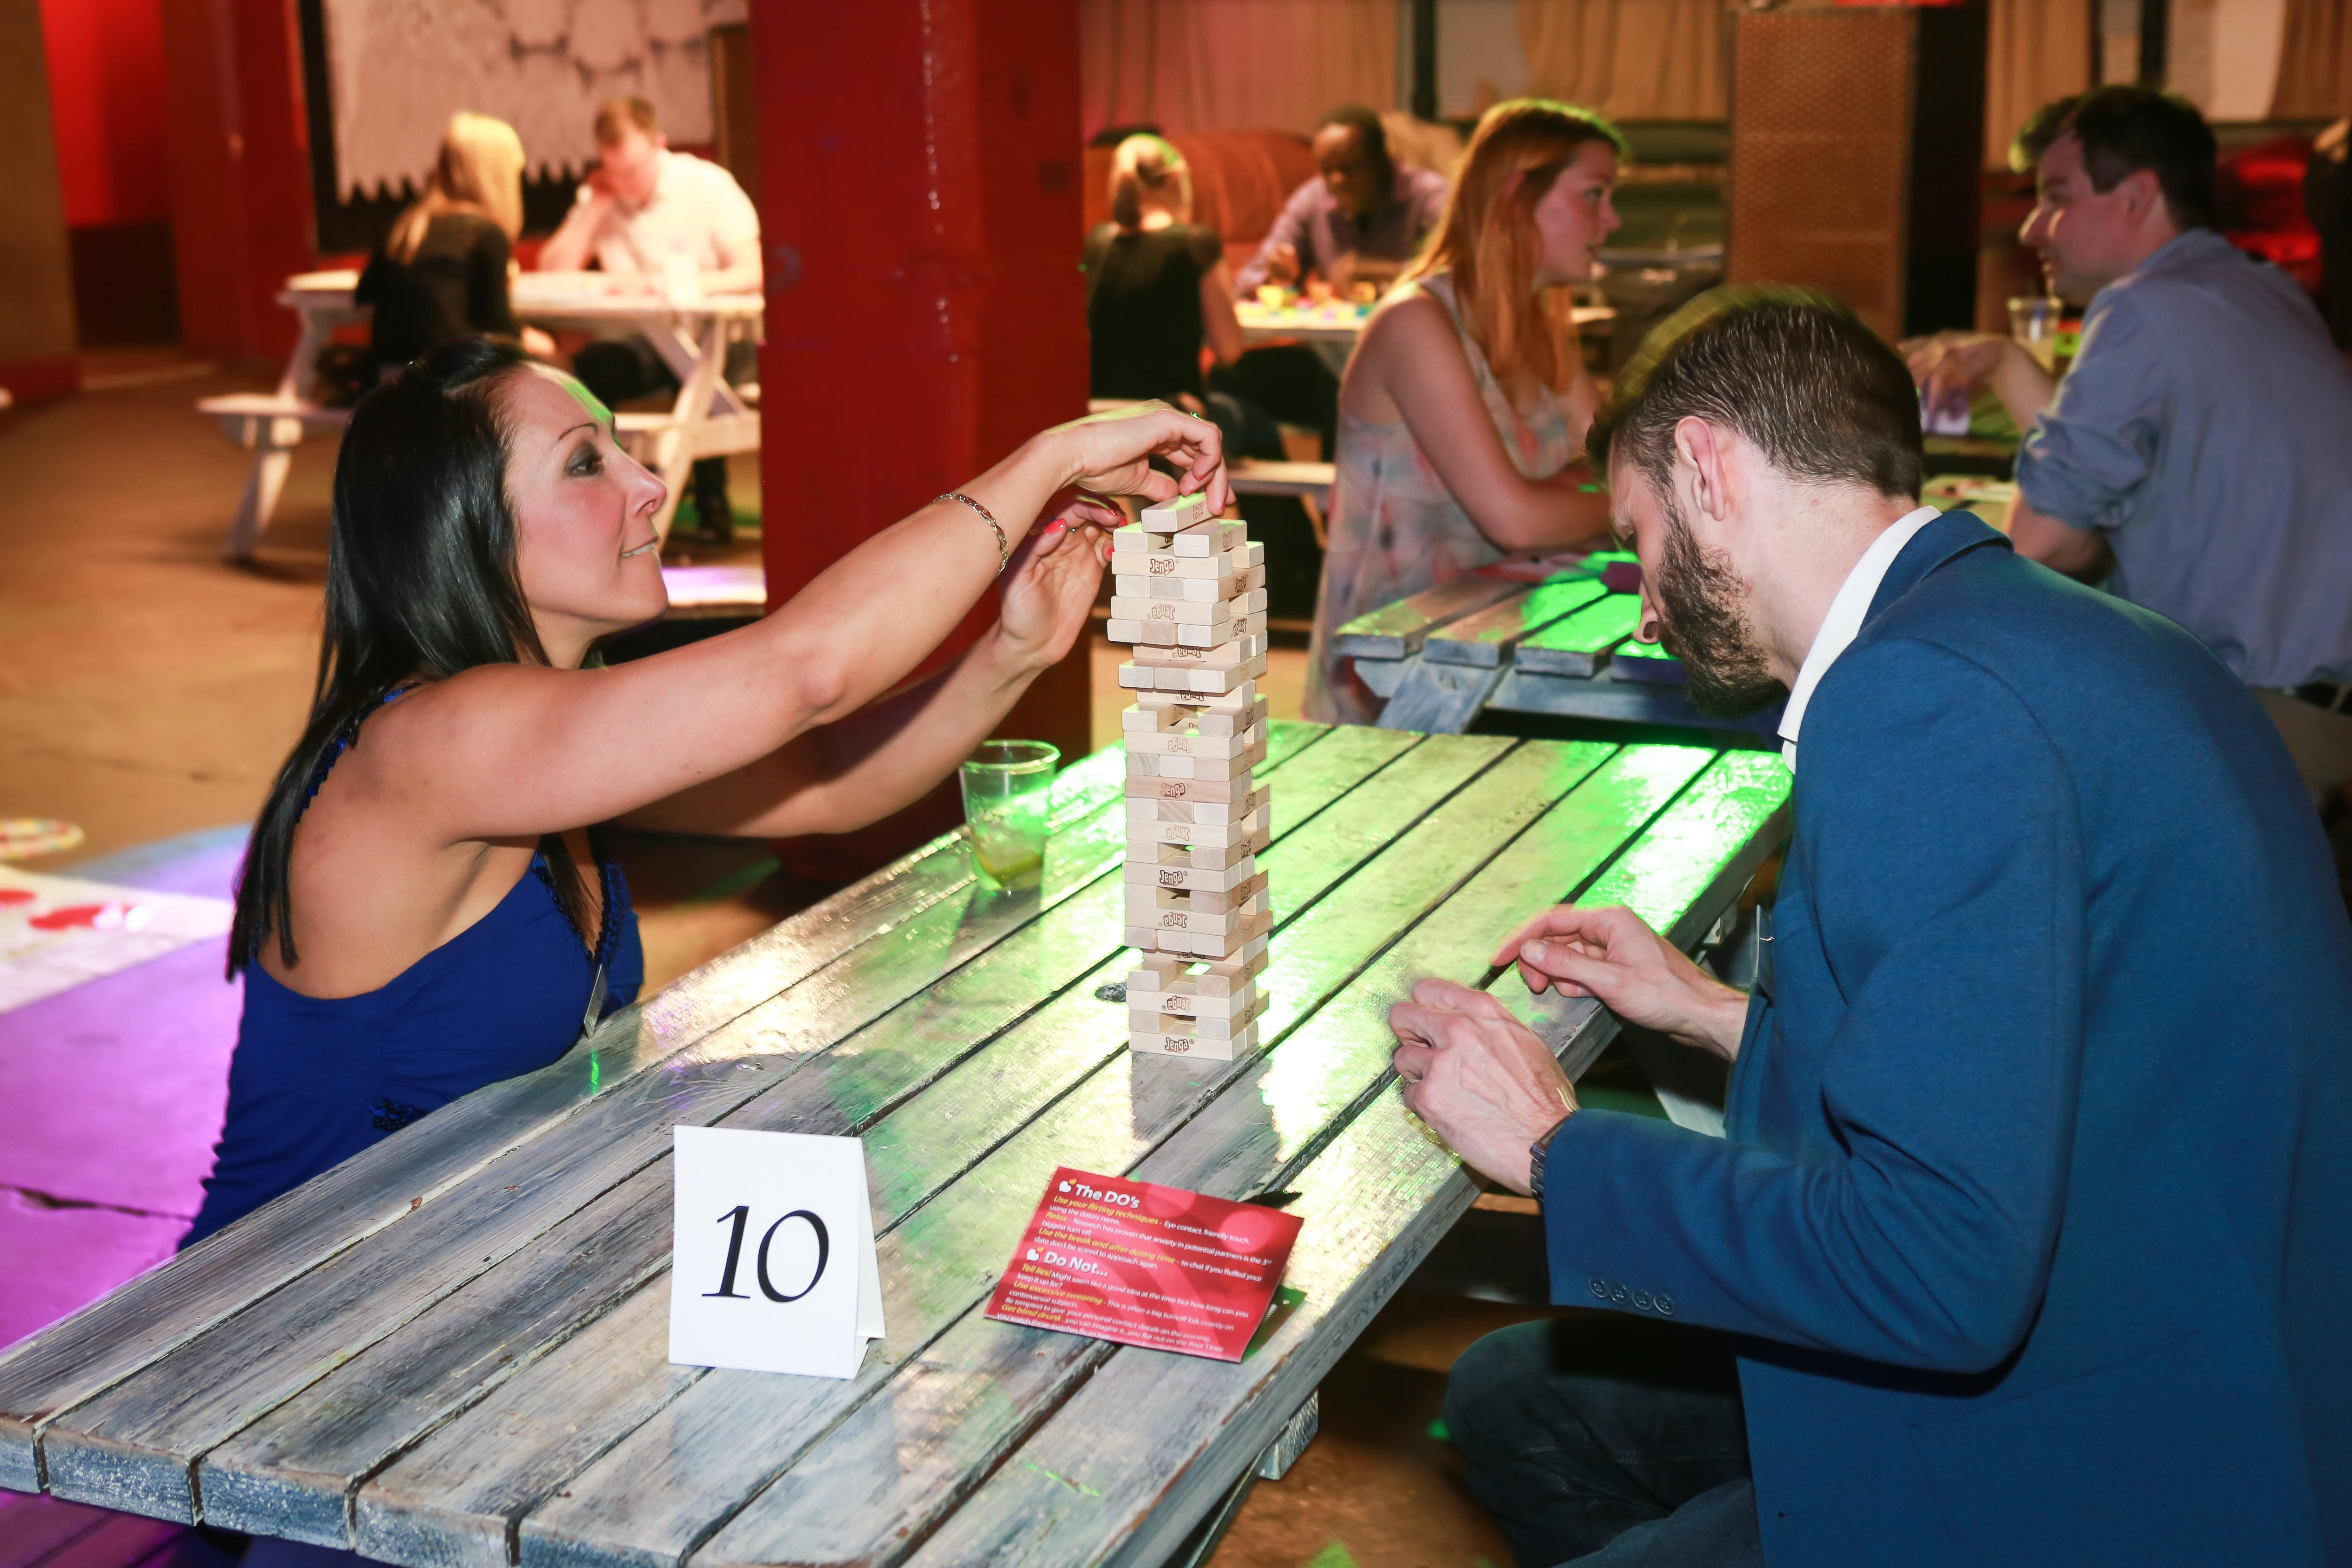 Drunk Jenga Dating in London (Ages 23-35)